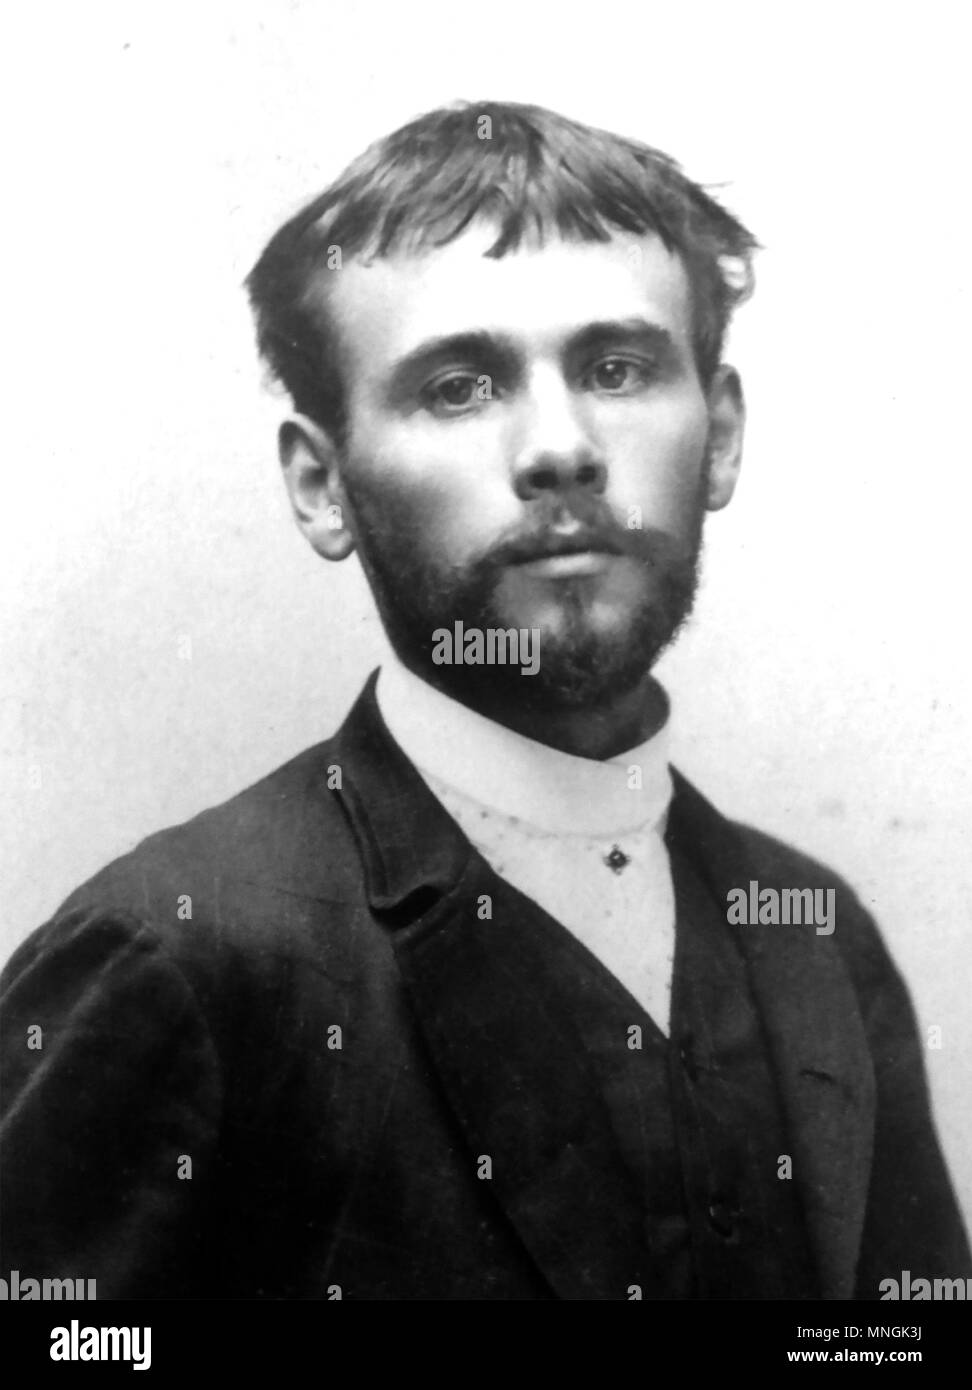 GUSTAV KLIMT (1862-1918) Austrian painter of the Vienna Secession Movement, photographed in 1887 - Stock Image